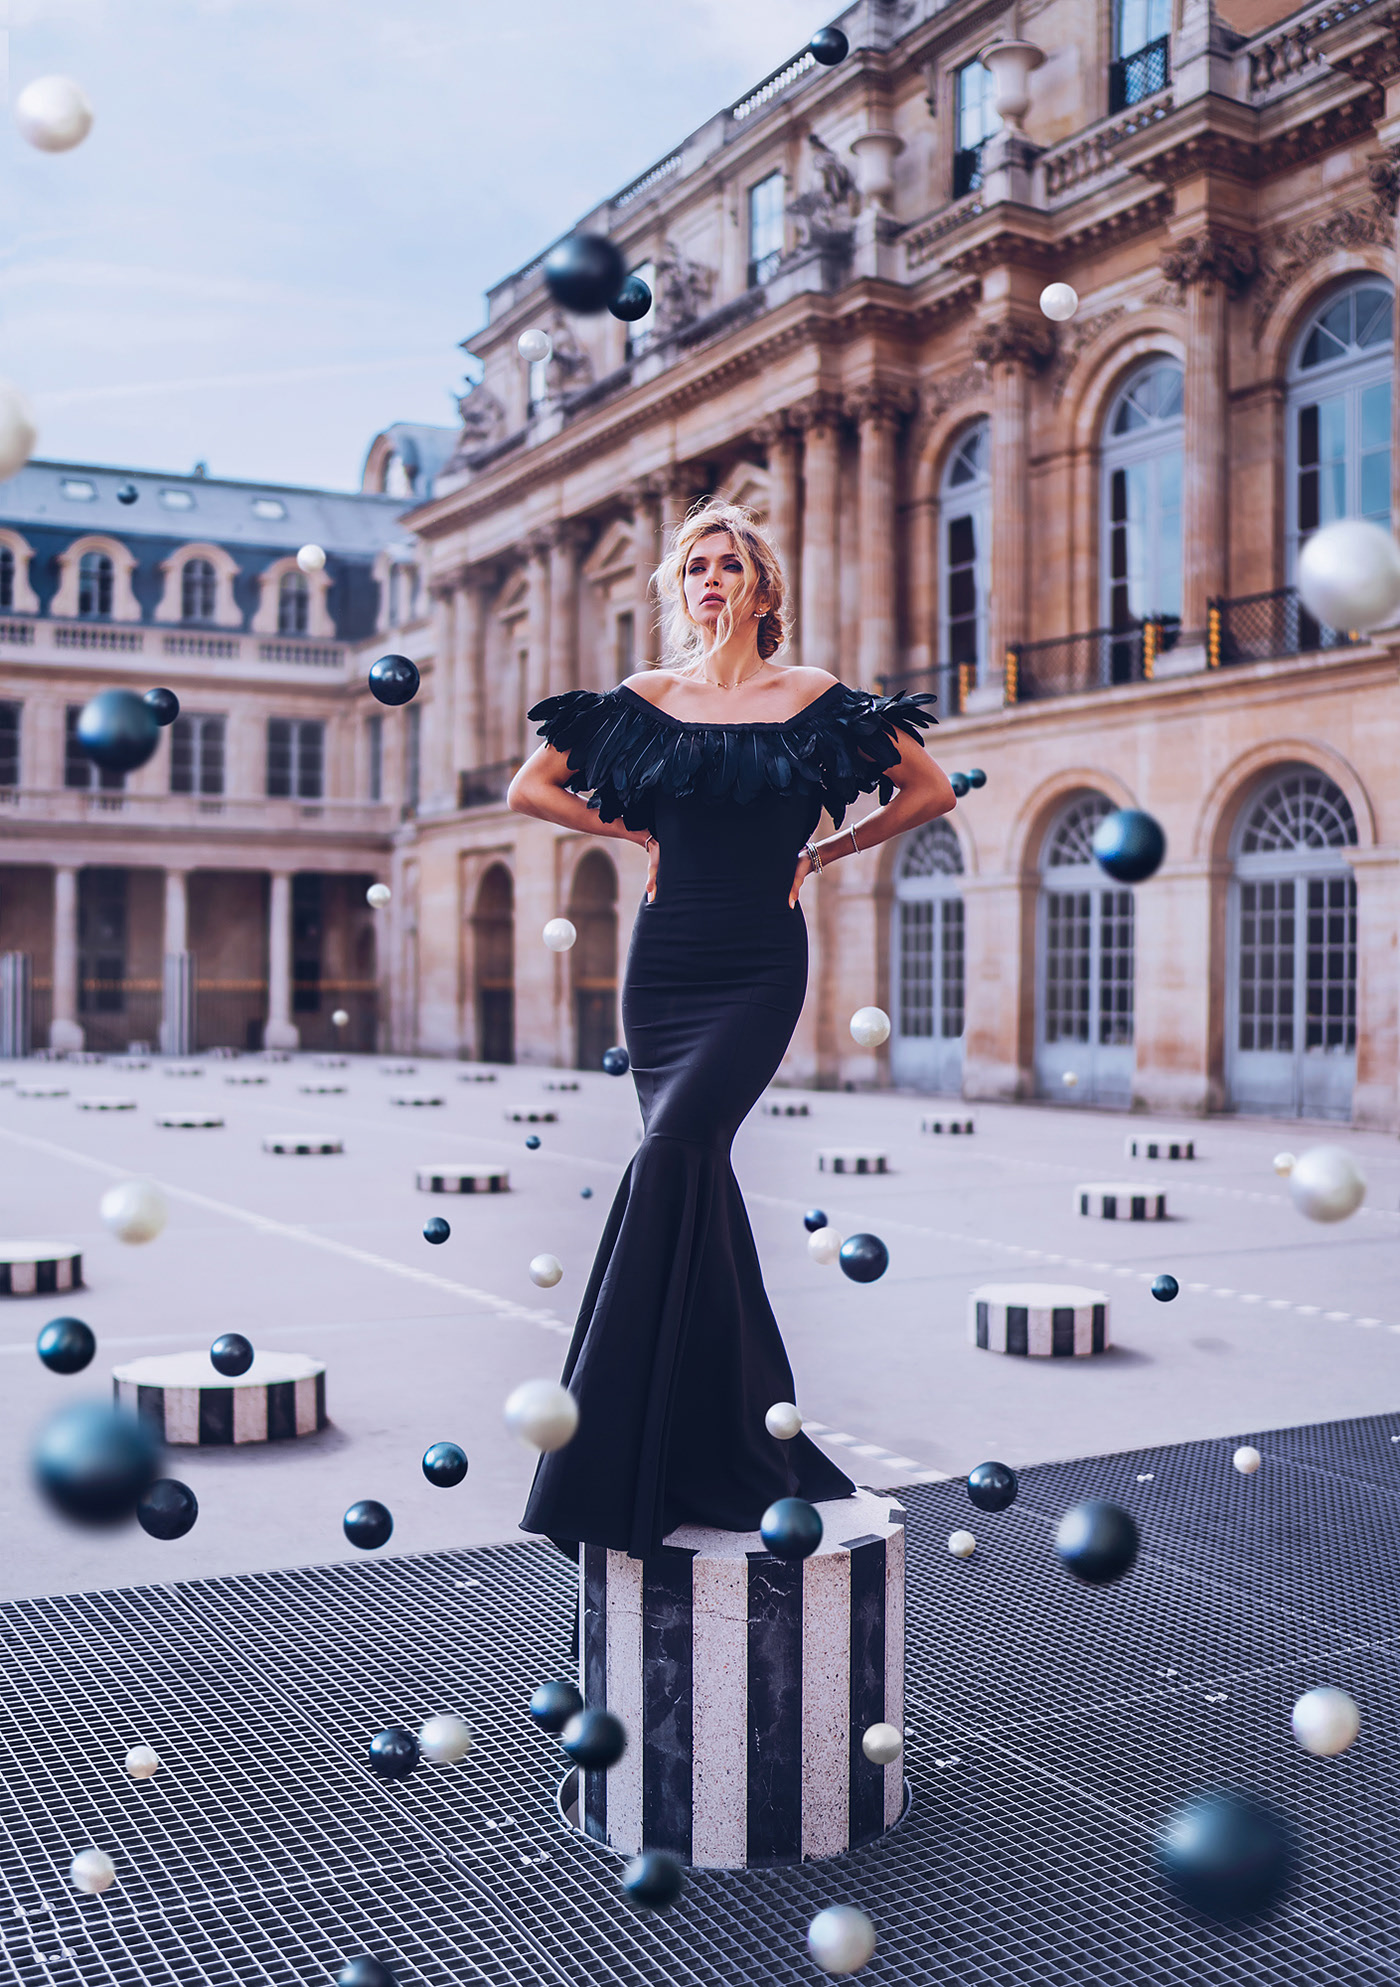 Magic in Paris Campaign for Oh My Look! & G.Bar | Вера Брежнева - фото Кристина Макеева